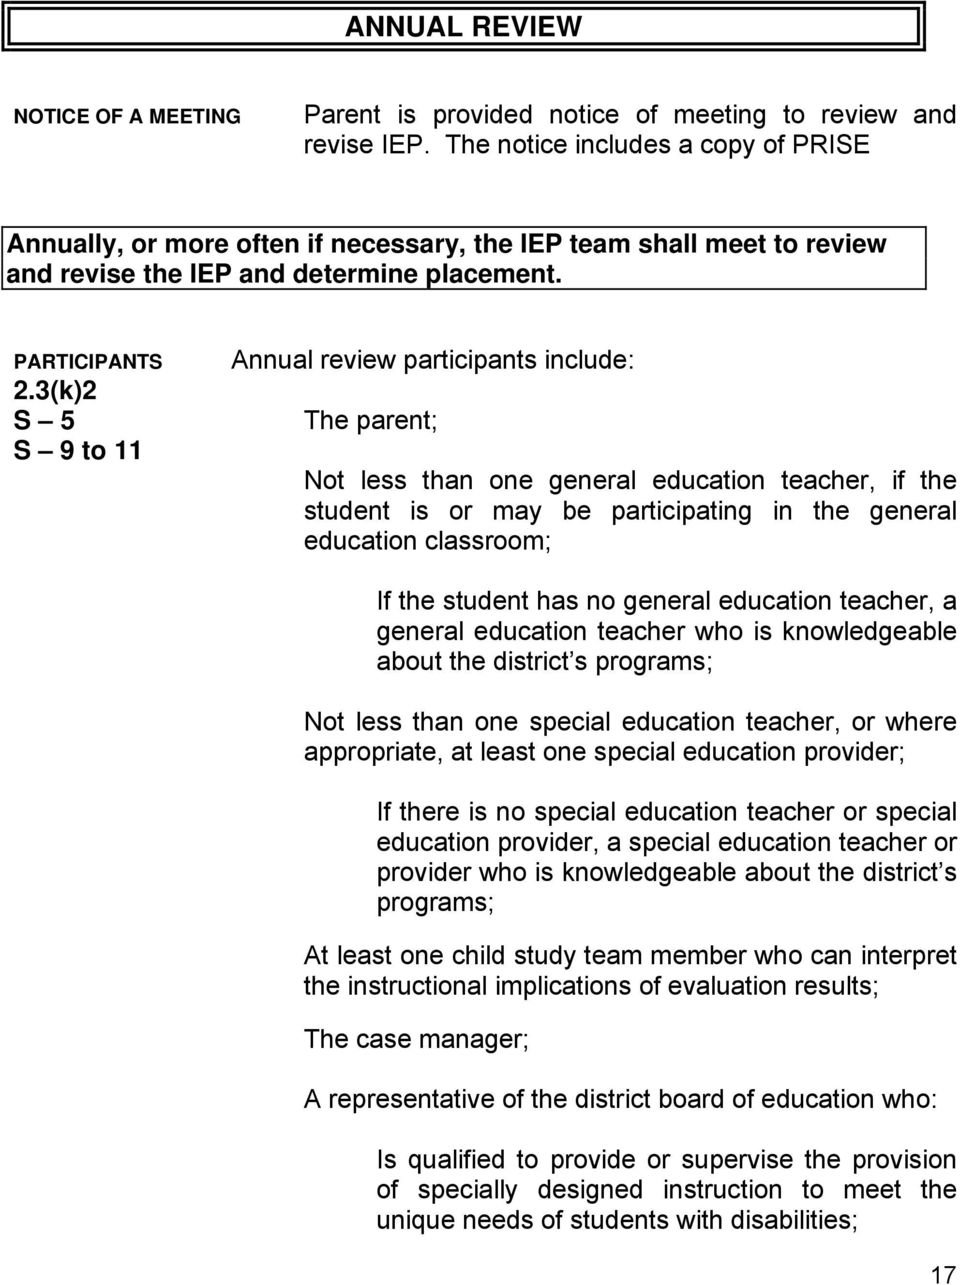 3(k)2 S 5 S 9 to 11 Annual review participants include: The parent; Not less than one general education teacher, if the student is or may be participating in the general education classroom; If the